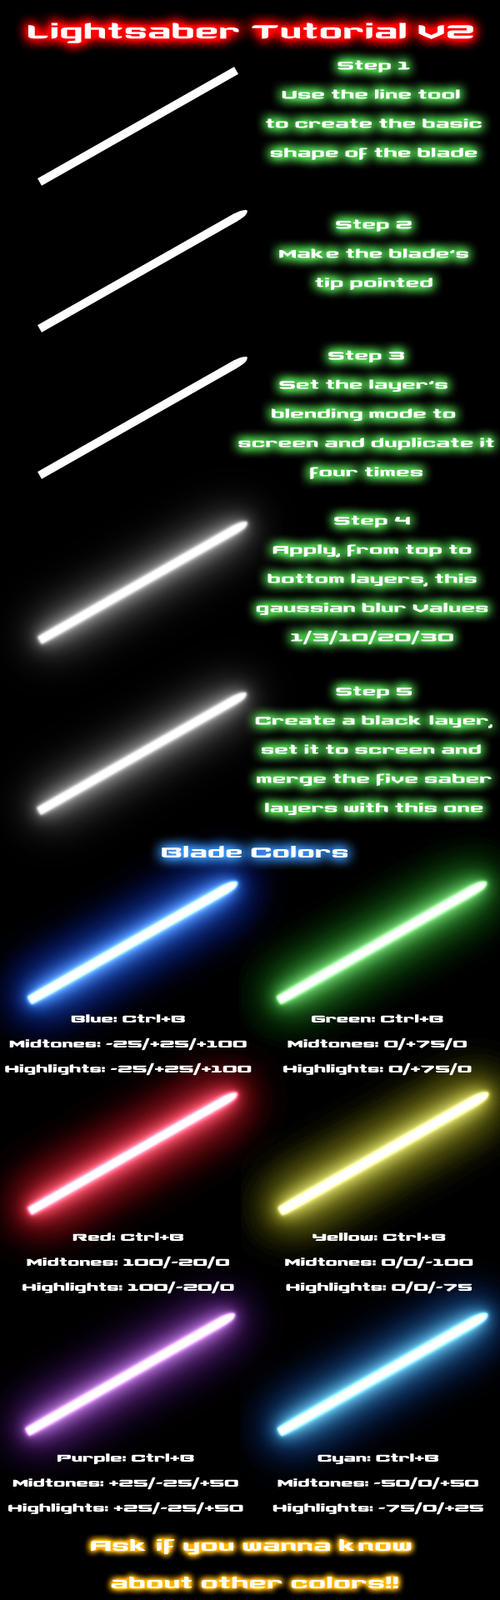 Lightsaber Colors And Meanings